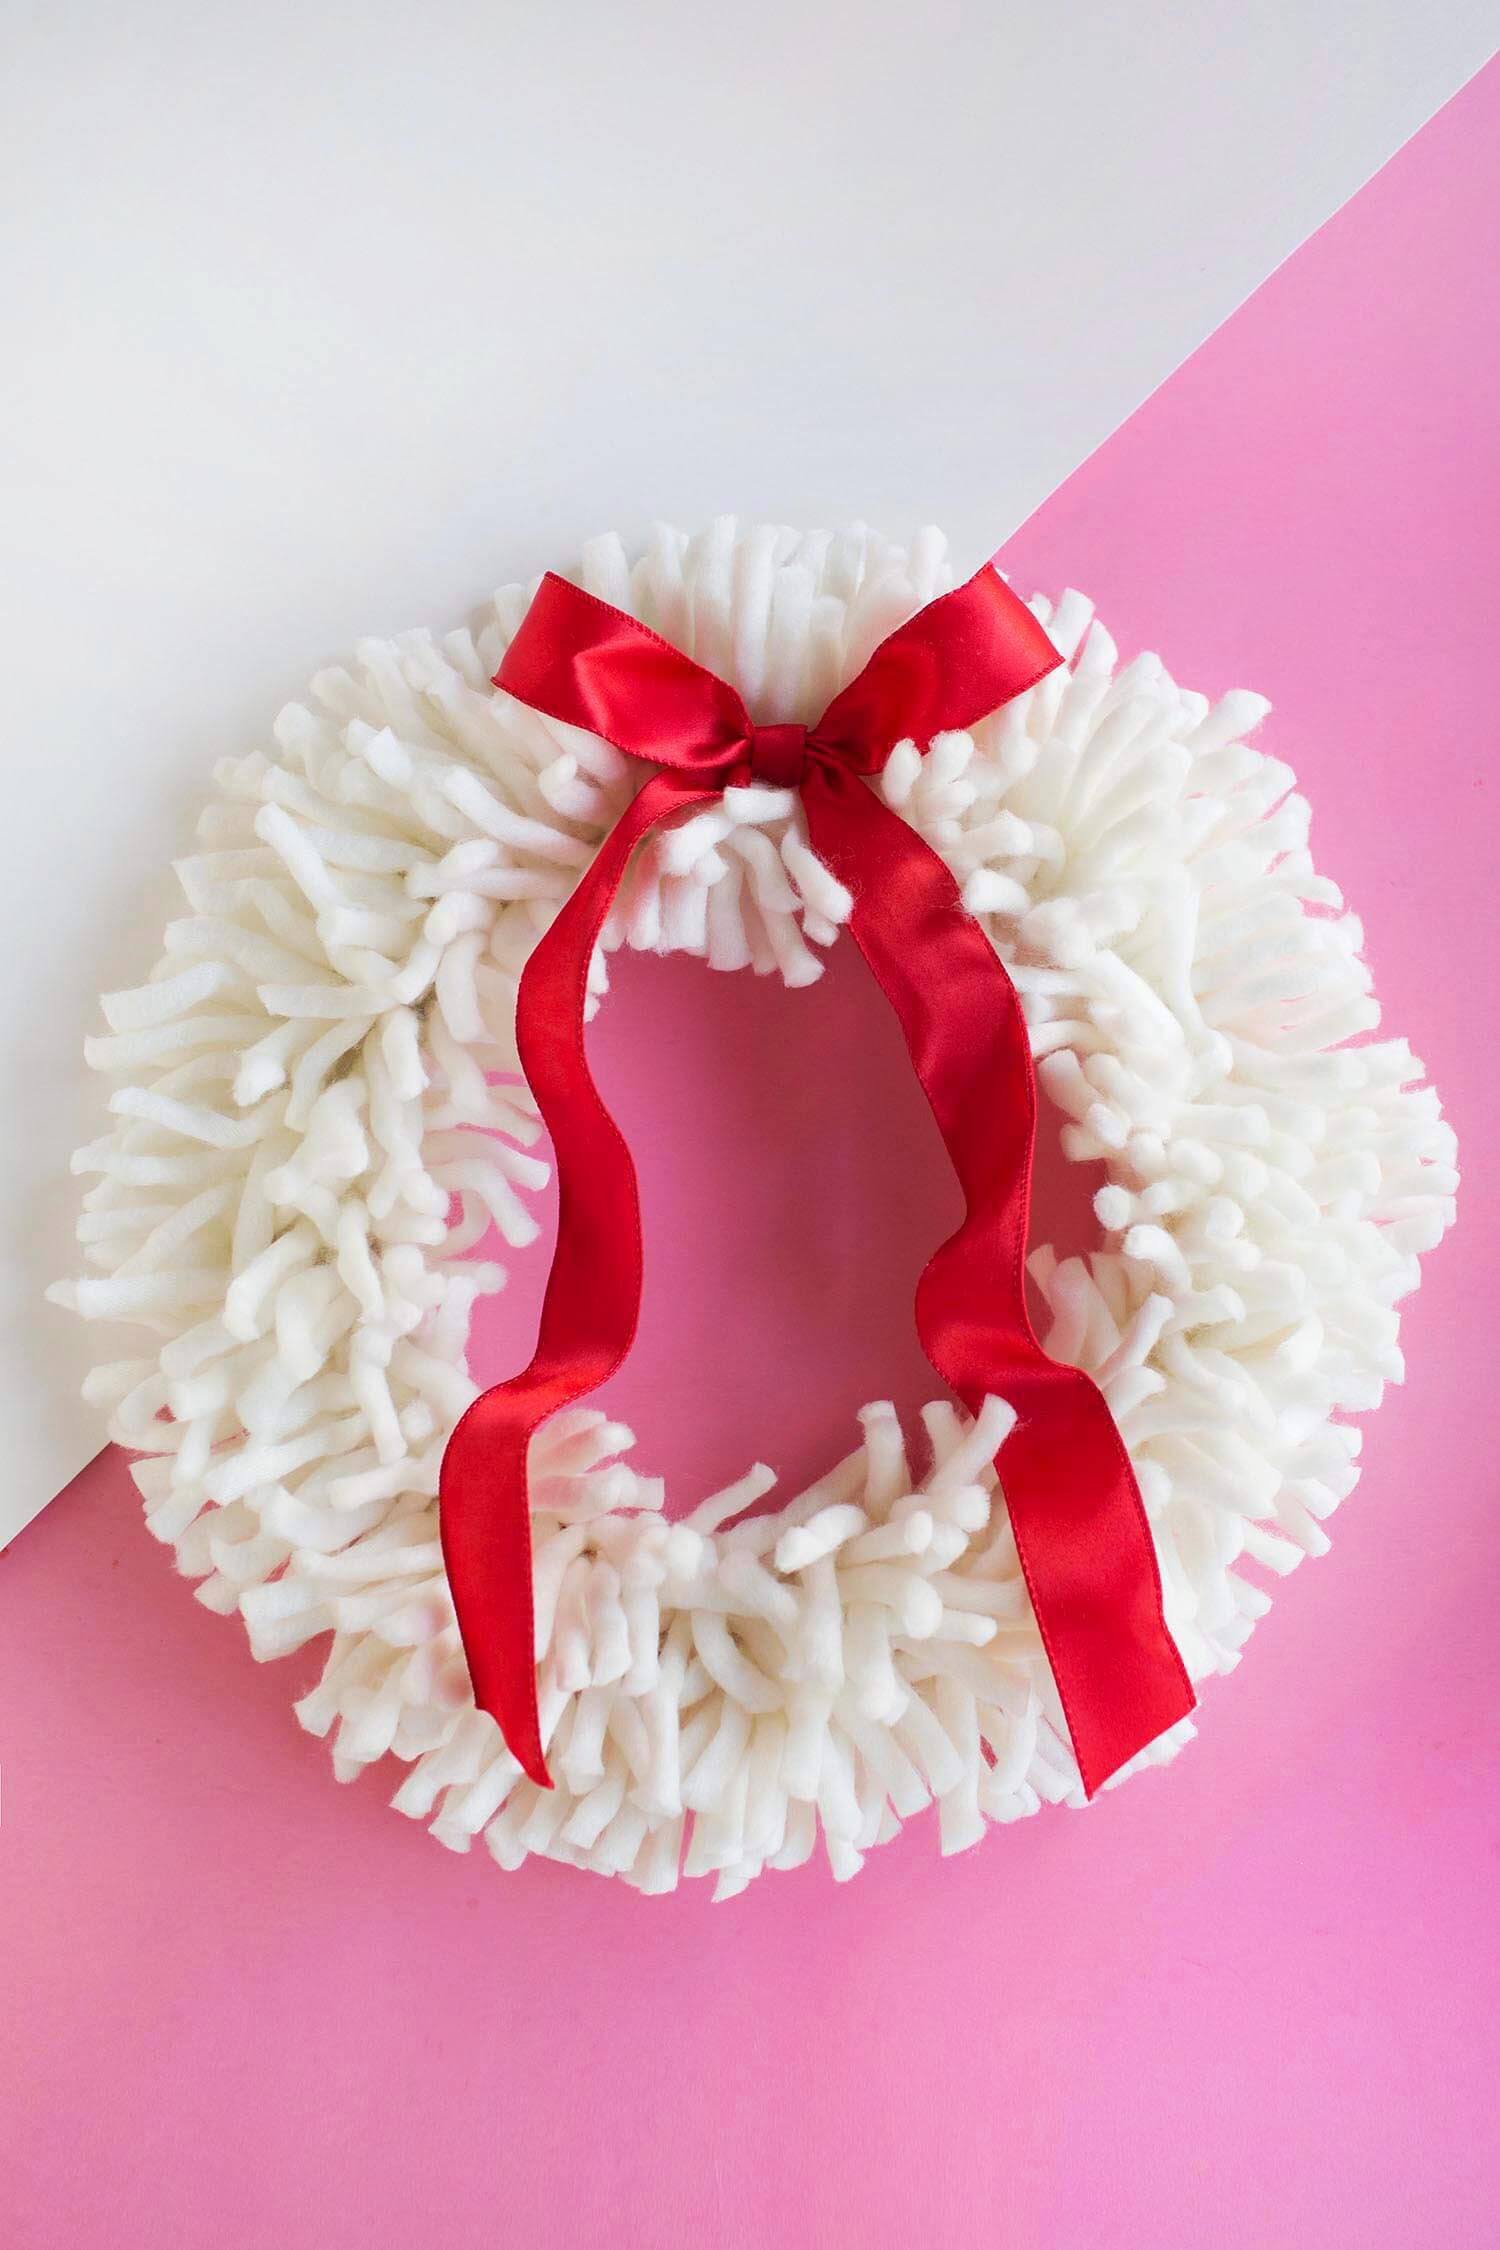 DIY Yarn Wreath (from abeautifulmess.com)